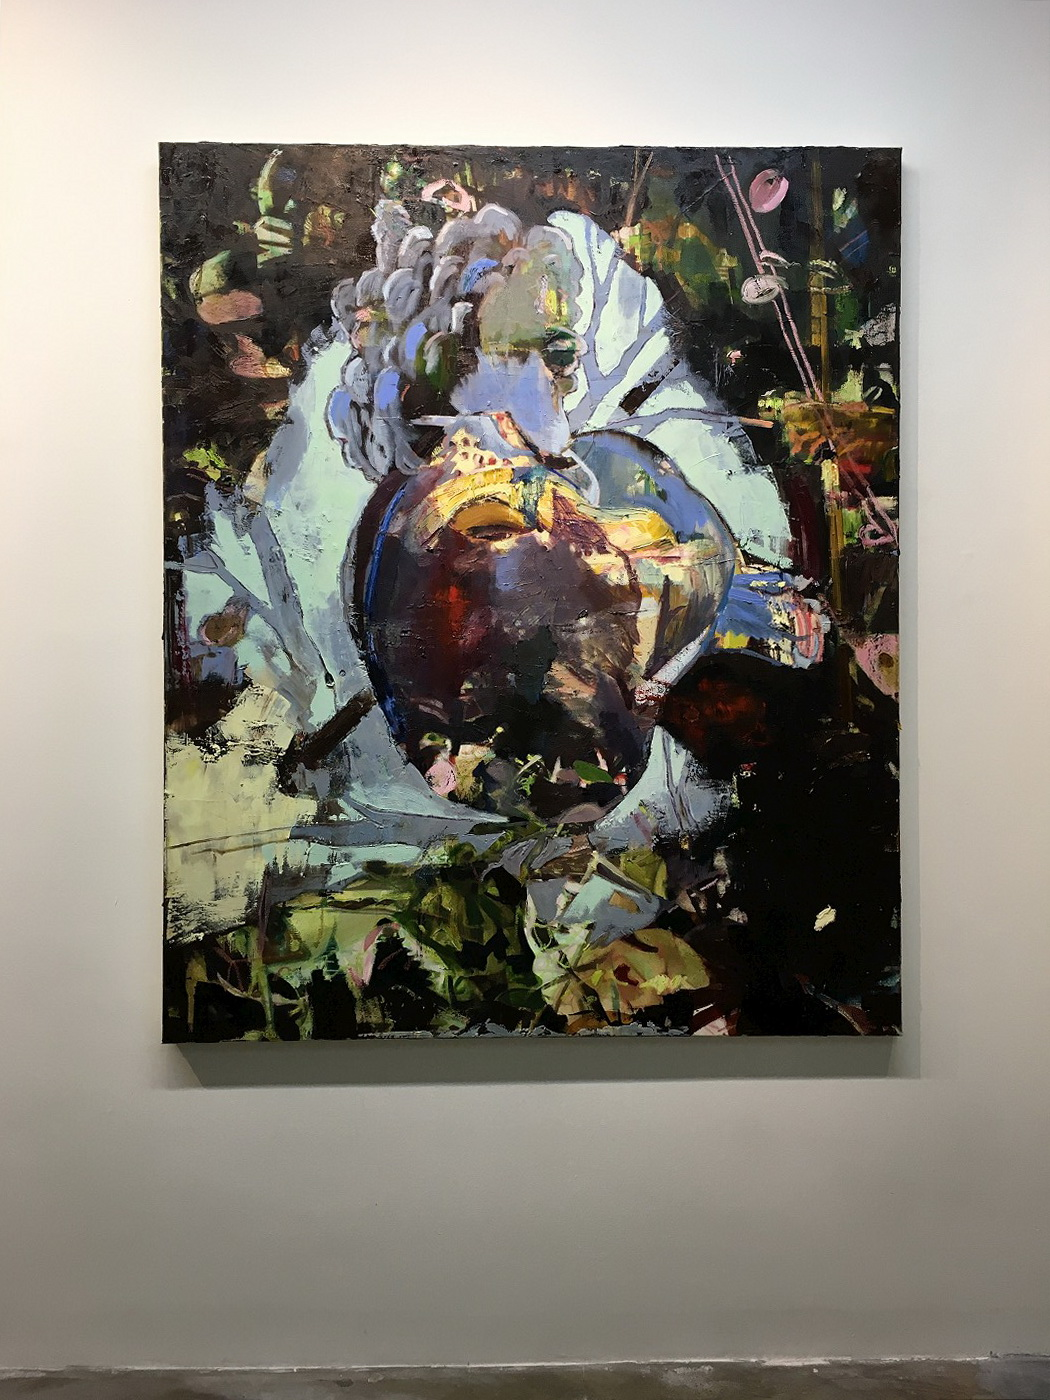 Showing: Anna Bittersohl -